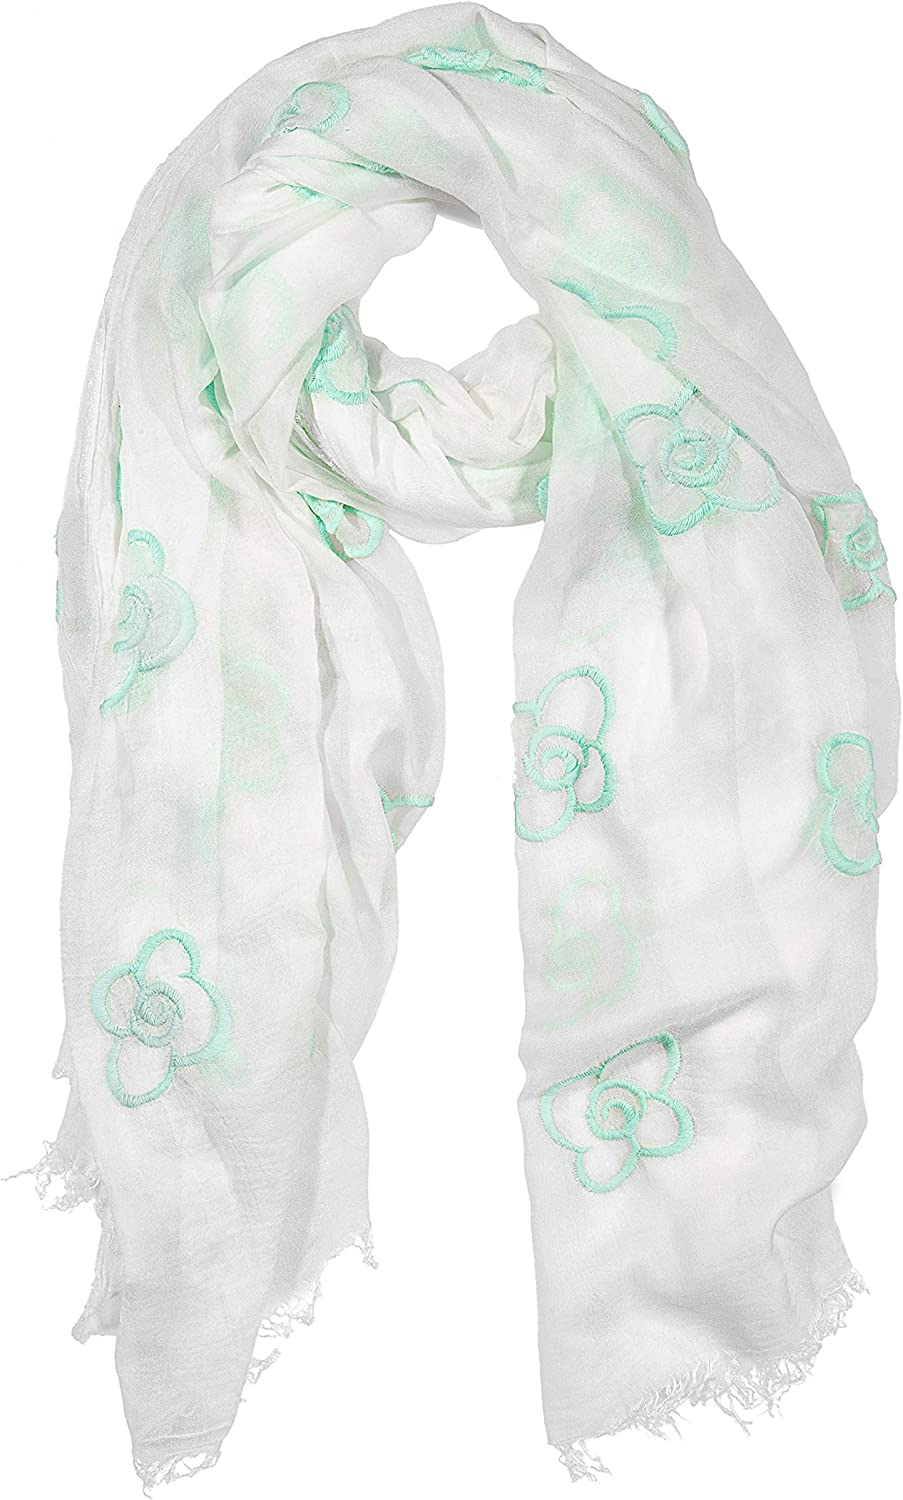 GIULIA BIONDI 100% Made in Luxury Italy Scarf Shawl New item Embroidered Wrap St